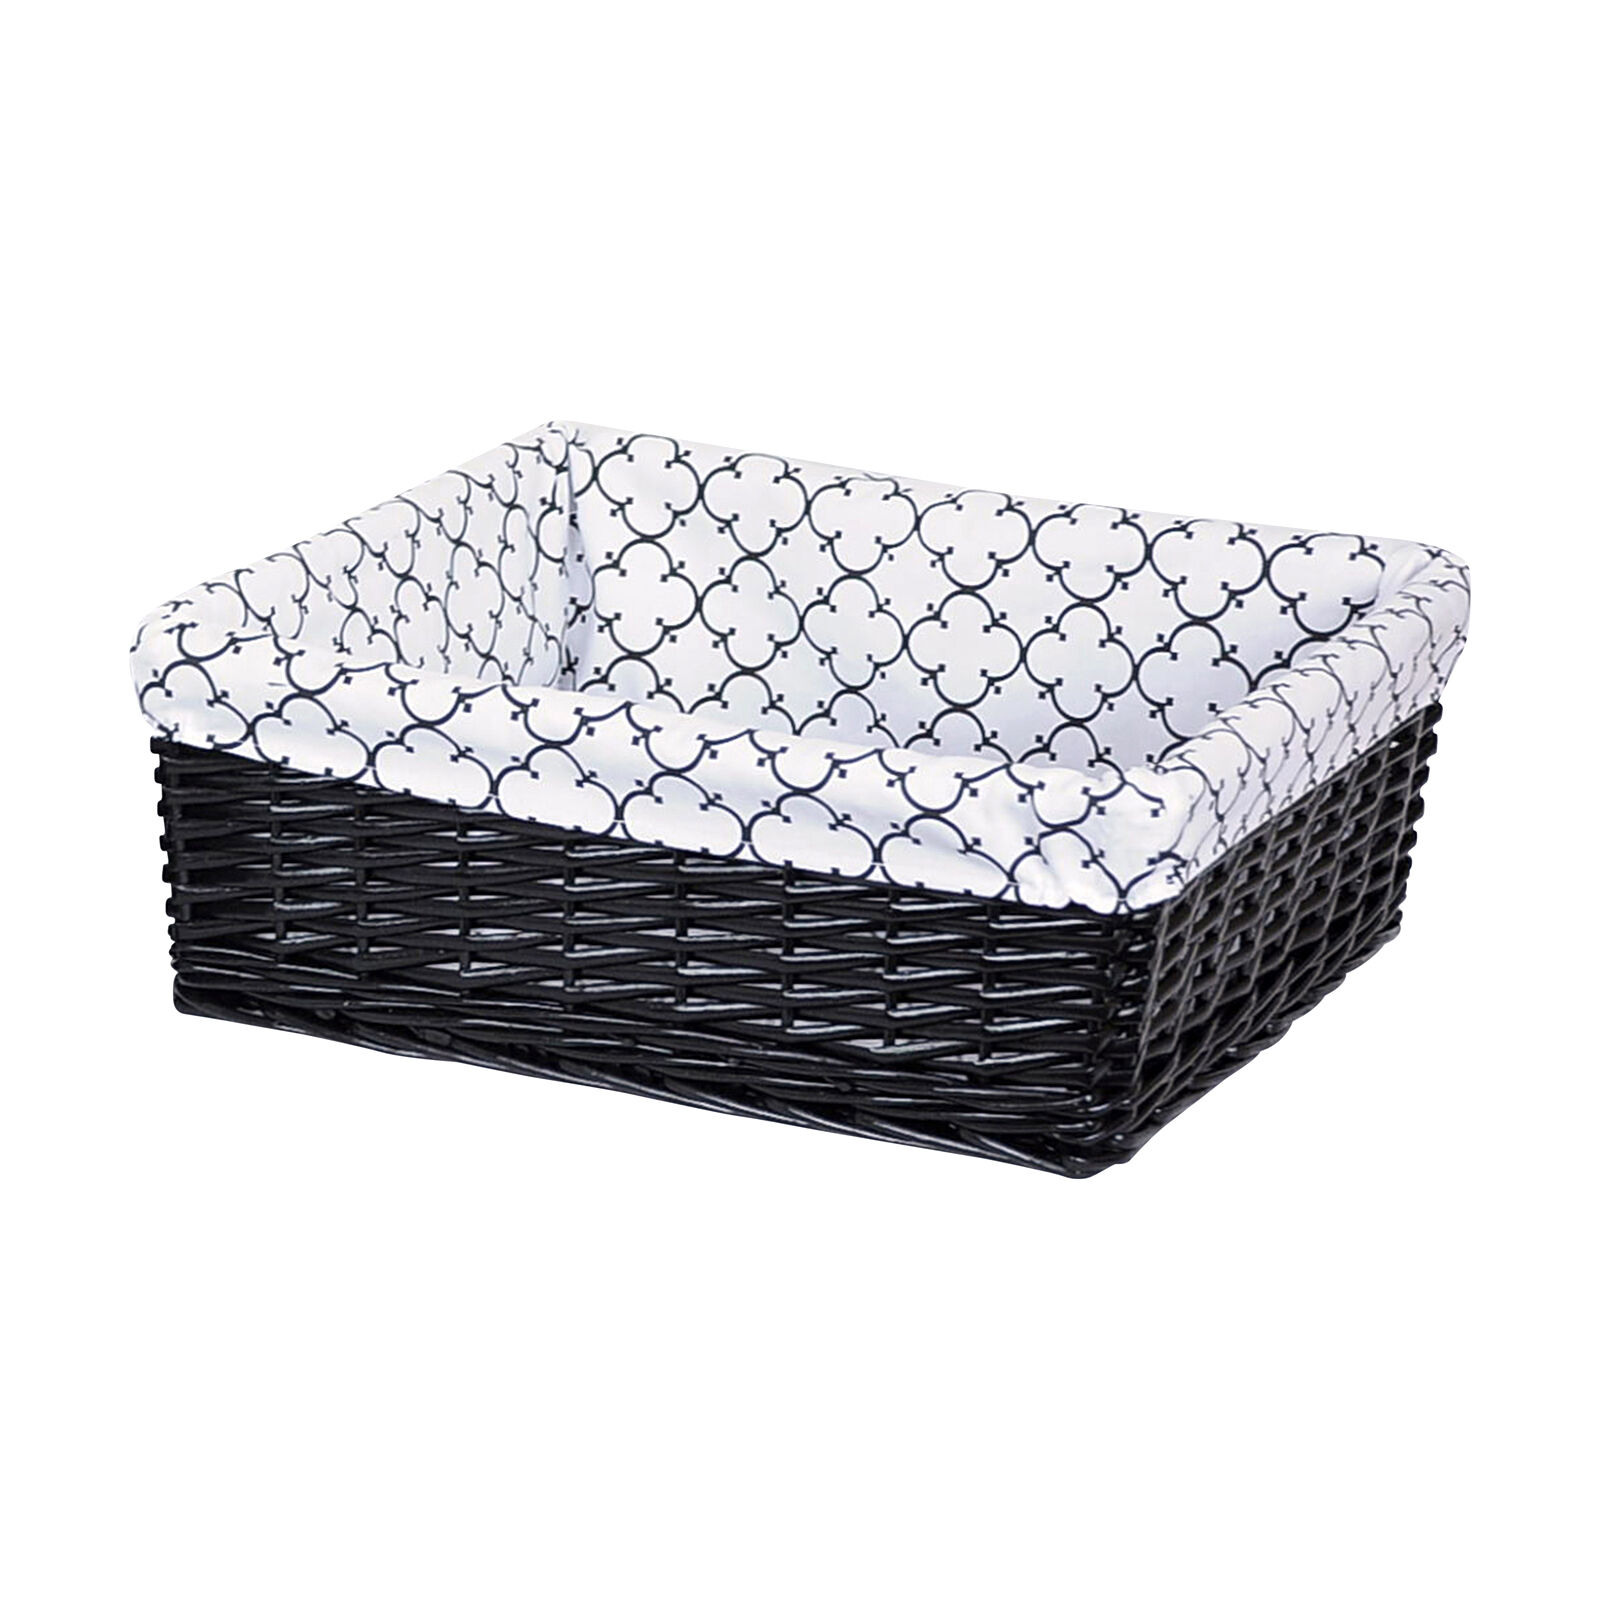 White Hamper With Liner Small Rectangular Black Willow Basket With Black And White